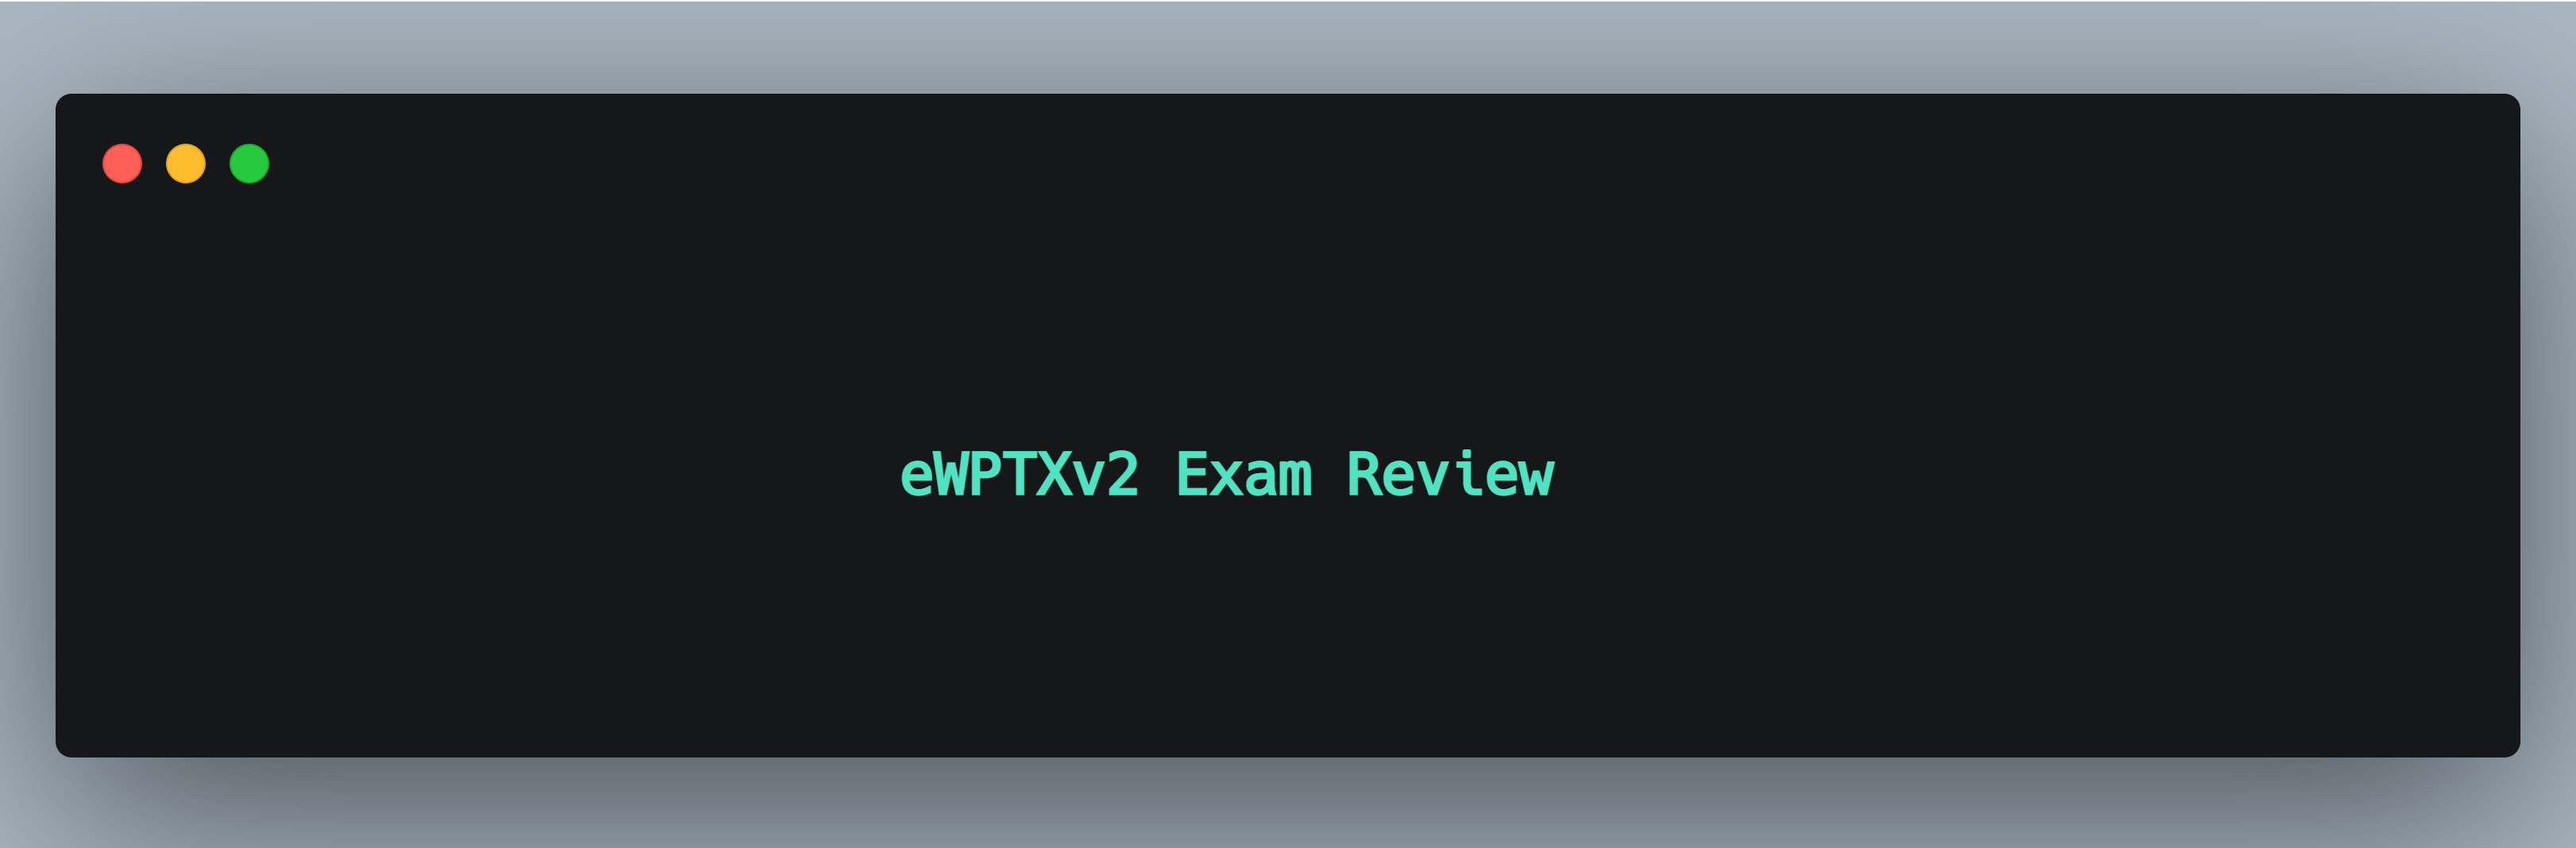 eWPTXv2 Exam Review